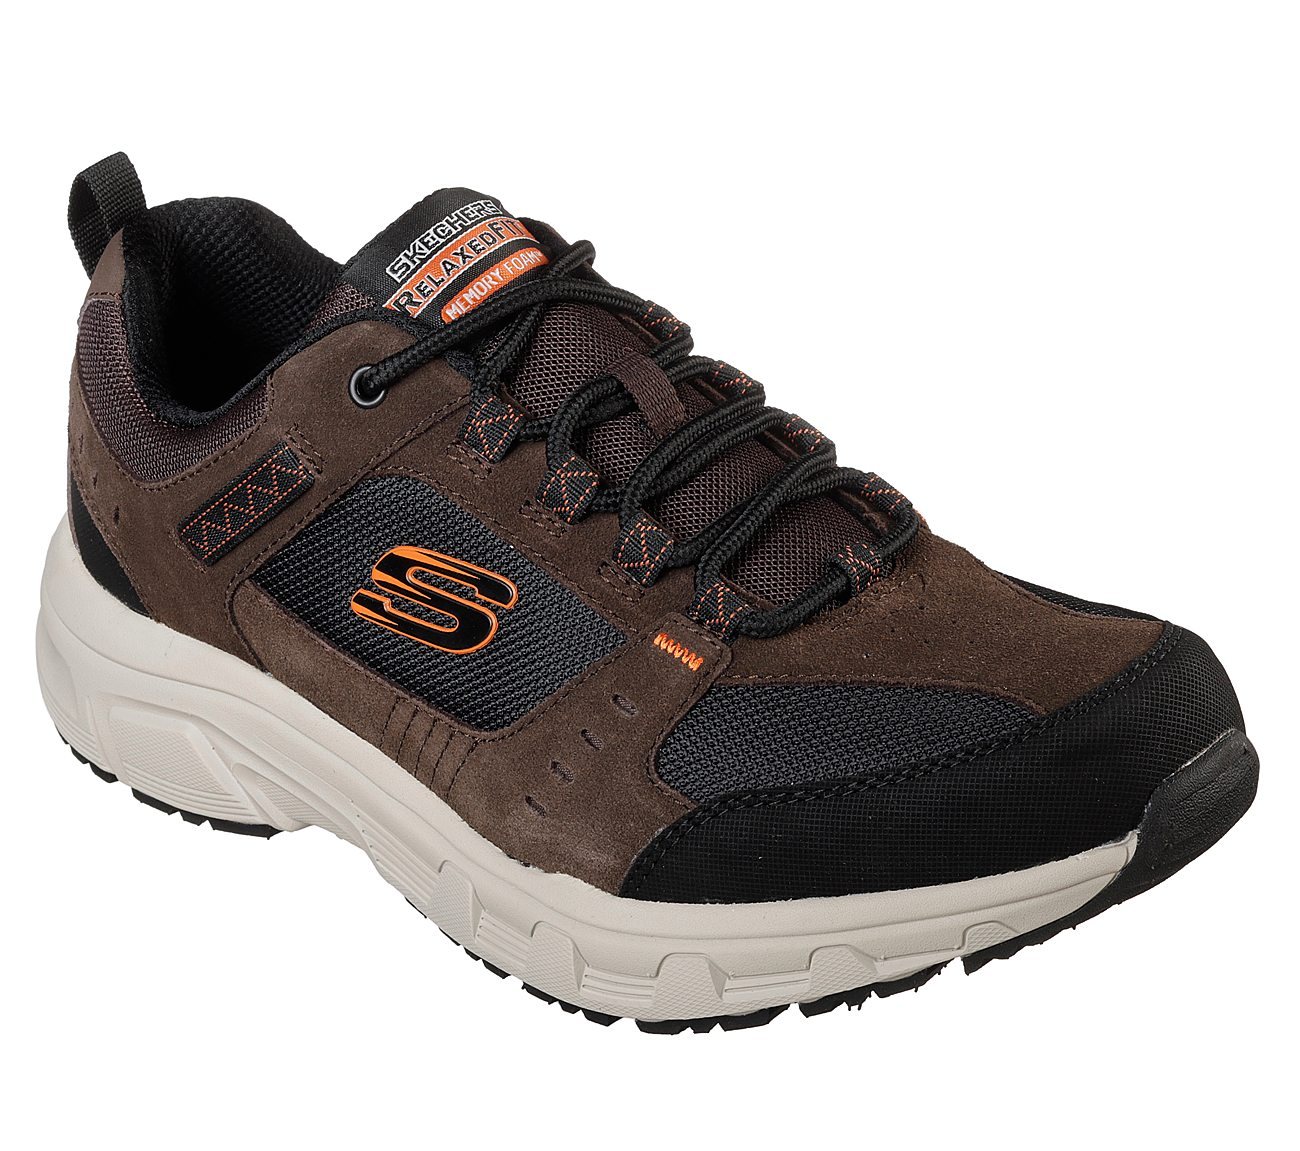 DEPORTIVO SKECHERS OAK CANYON